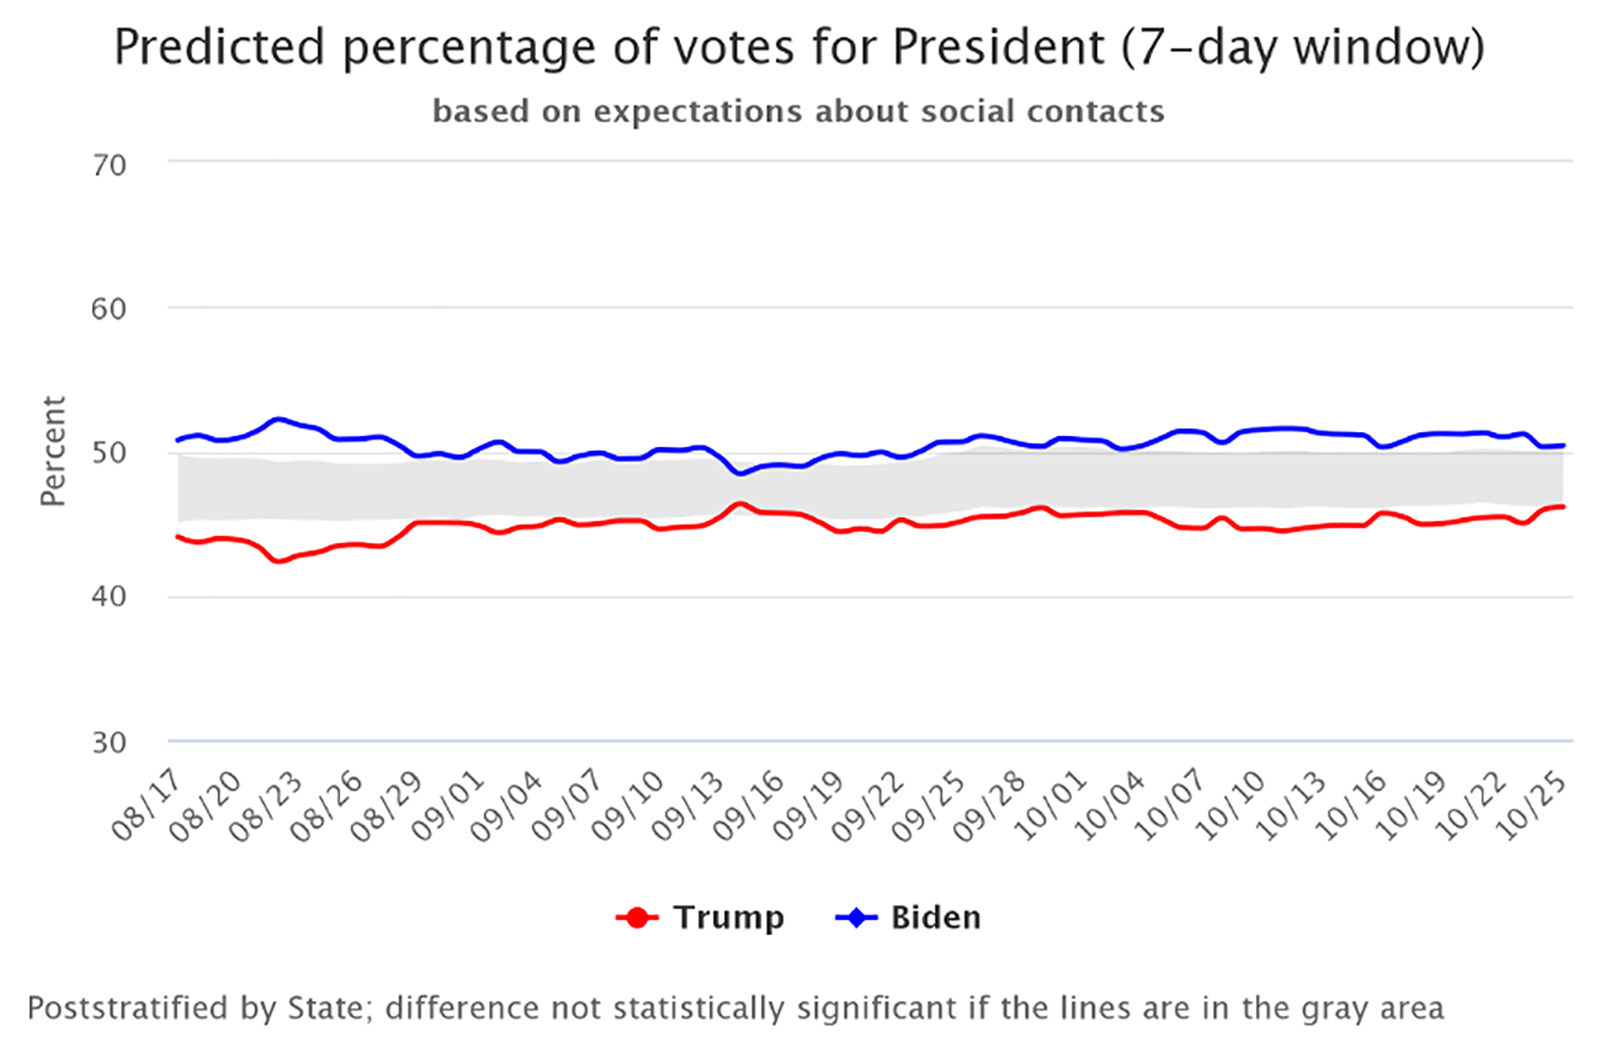 Graph shows predicted number of votes for President Trump (red line) and former Vice President Biden (blue line) based on poll respondents' expectations of how their social contacts' will vote.